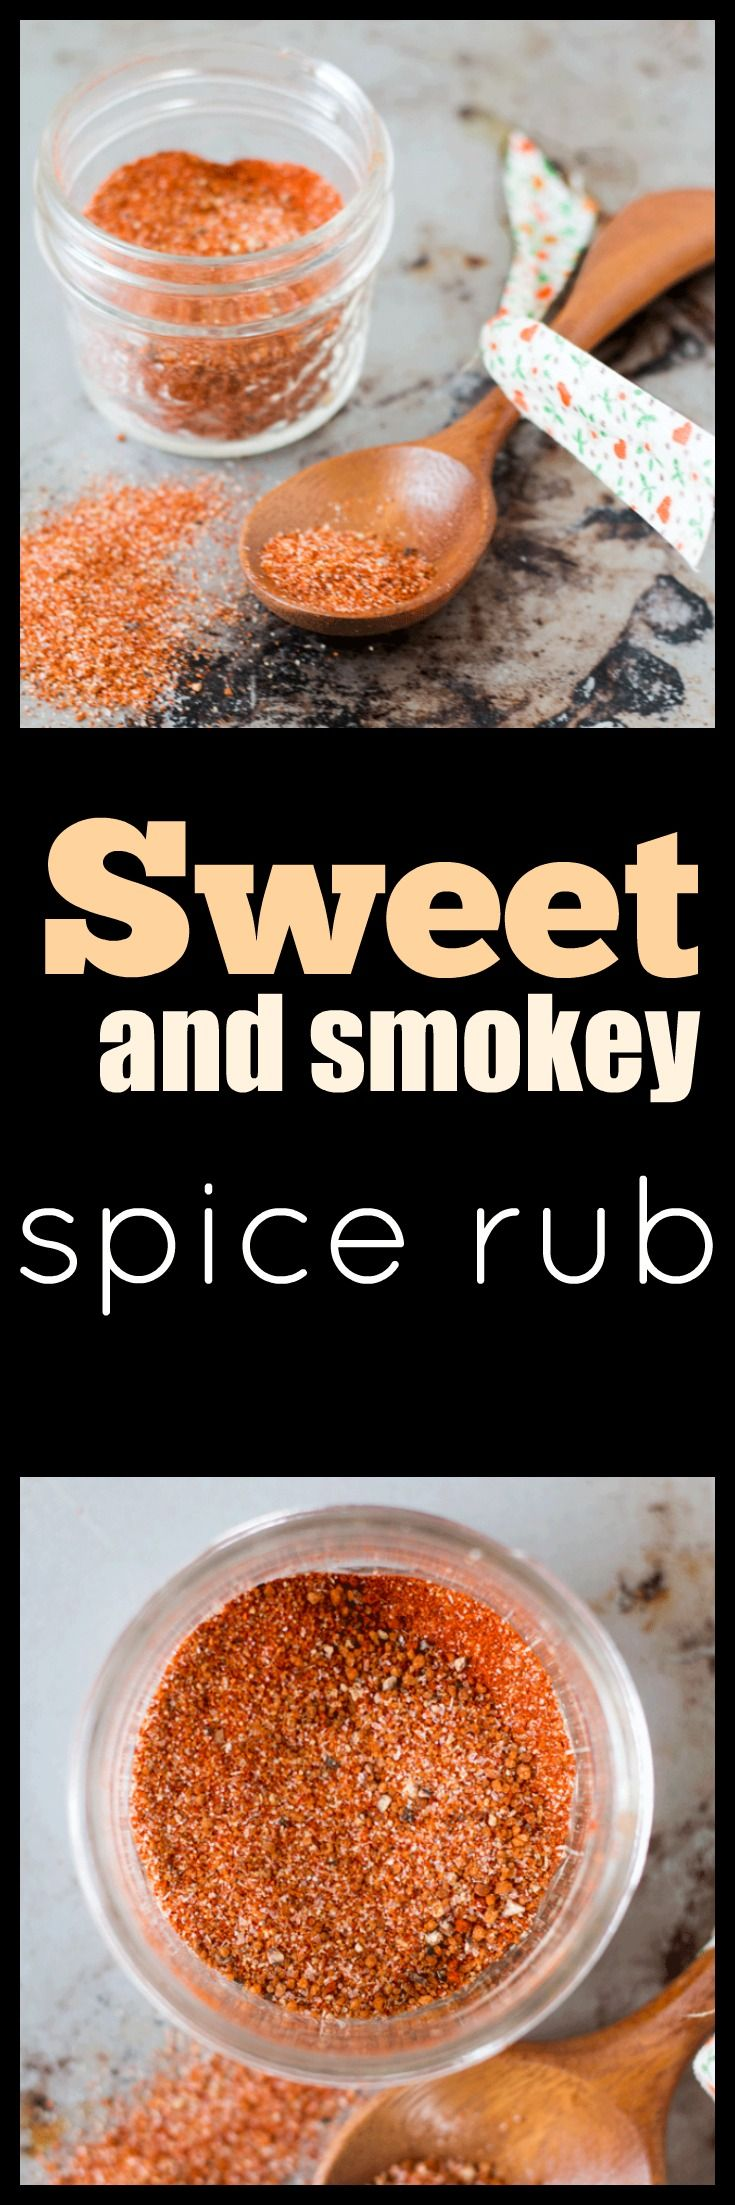 A gorgeous sweet and smokey spice rub for infusing flavor into meats and vegetables. Perfect for when that special dish needs a more a kick. via @wholefoodbellies